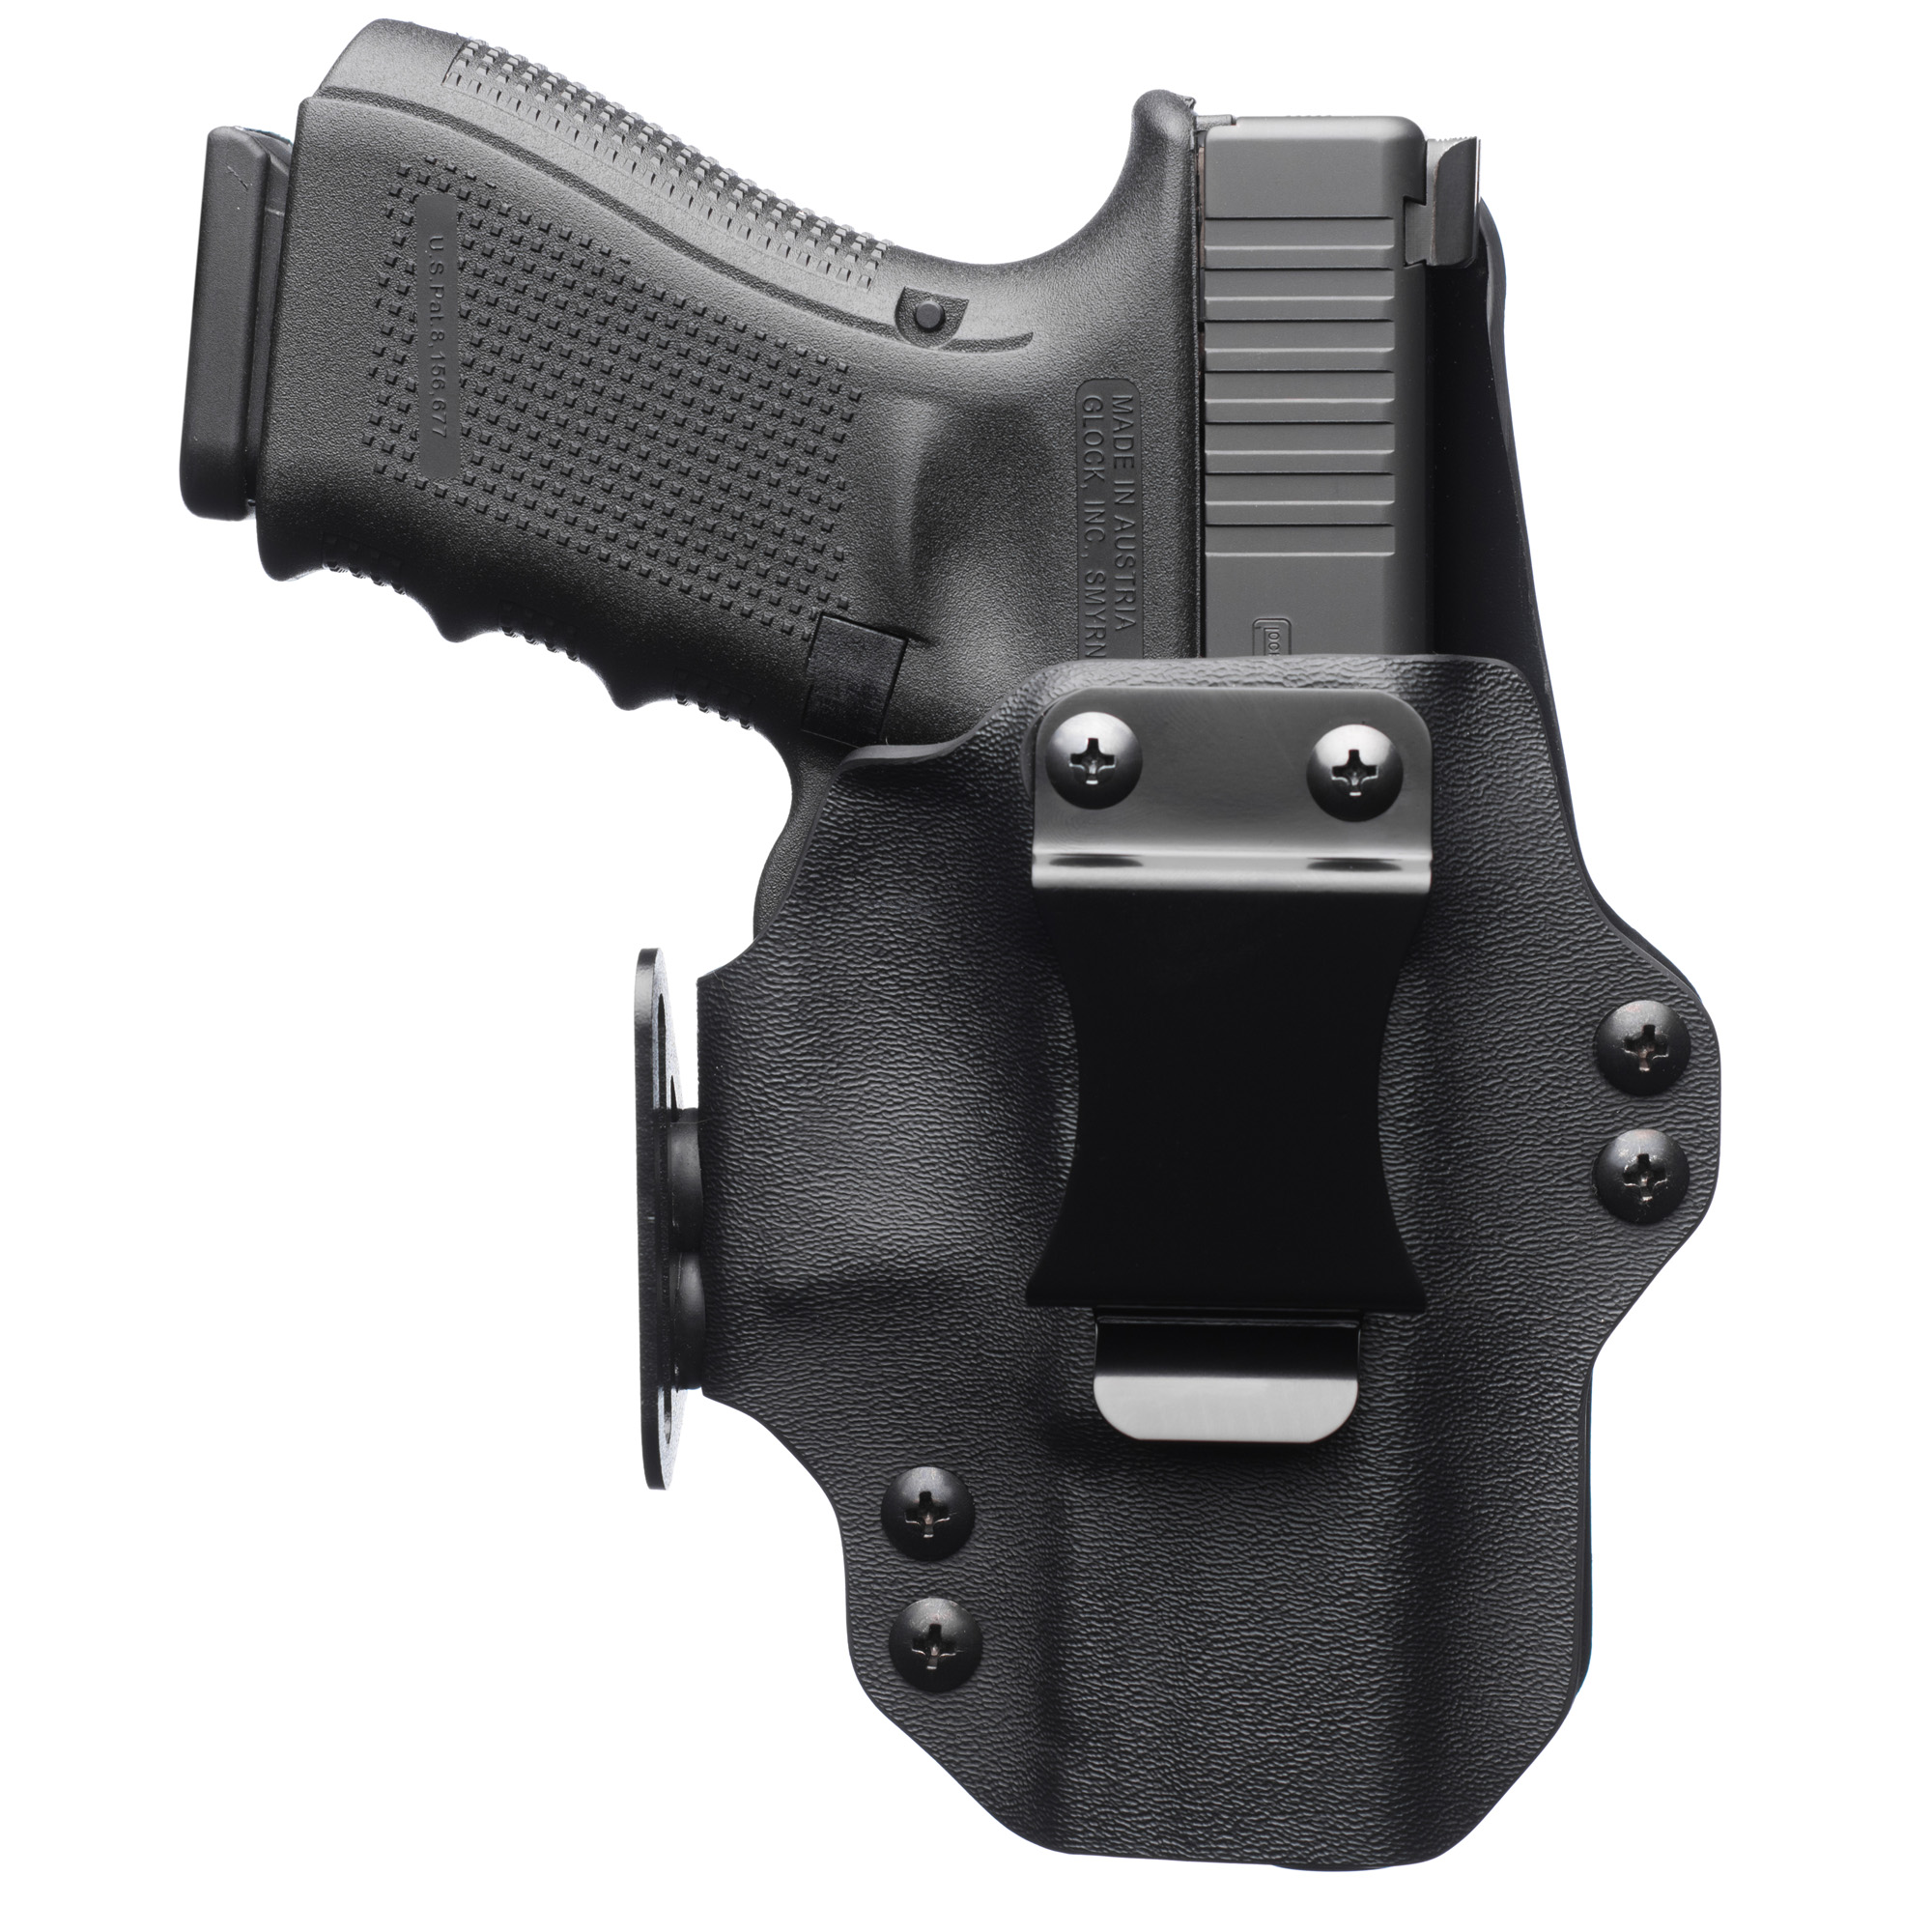 "The DualPoint(TM) is designed from the ground up to be the ultimate appendix holster. The overall footprint of the holster is minimized through the use of innovative molding techniques and design characteristics which provide a feature set unmatched by any other appendix holster on the market today. The one-piece design"" folded from the trigger guard side"" allows the incorporation of a side mounted strut loop that aids in concealment by pushing the grip of the firearm towards the body. This significantly reduces how much the gun prints. Featuring user adjustable retention as well as fully adjustable ride height and cant"" you can customize the fit of the holster to find the perfect spot that is most comfortable for daily wear. A user attachable mag pouch called the Plus Pouch is also available for purchase and can be added onto the holster at any time. The DualPoint(TM) can also be converted to a minimal OWB carry platform"" maximizing the value to the end user. All needed hardware to make this conversion is included in every box."